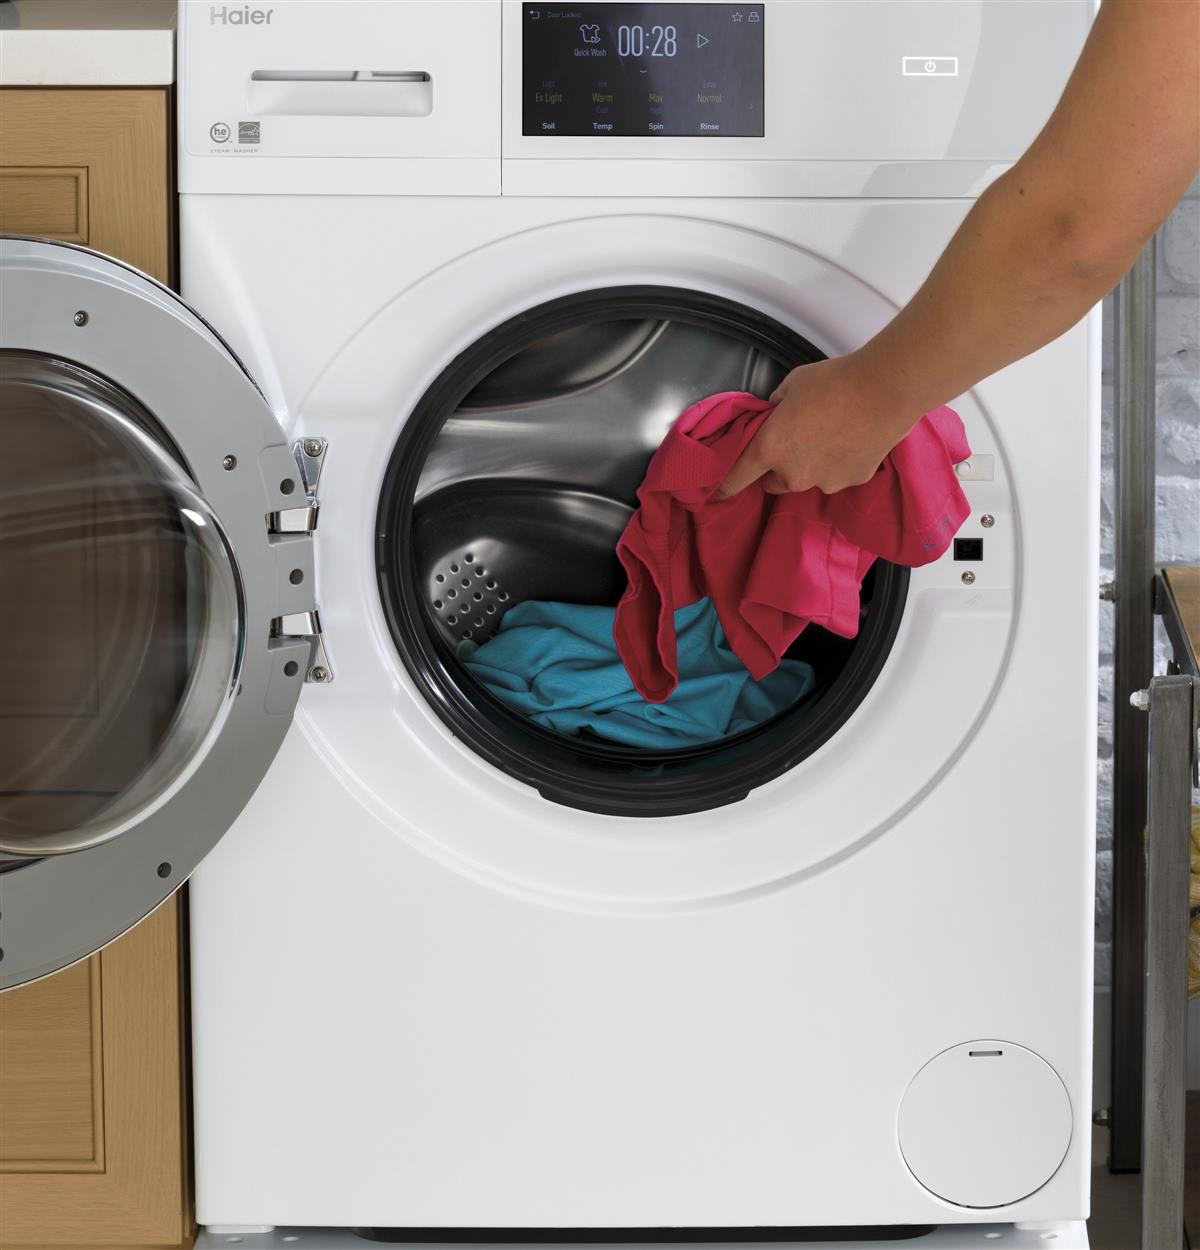 Need to wash and wear? You got it. The Quick Wash option lets you clean lightly soiled items in a hurry